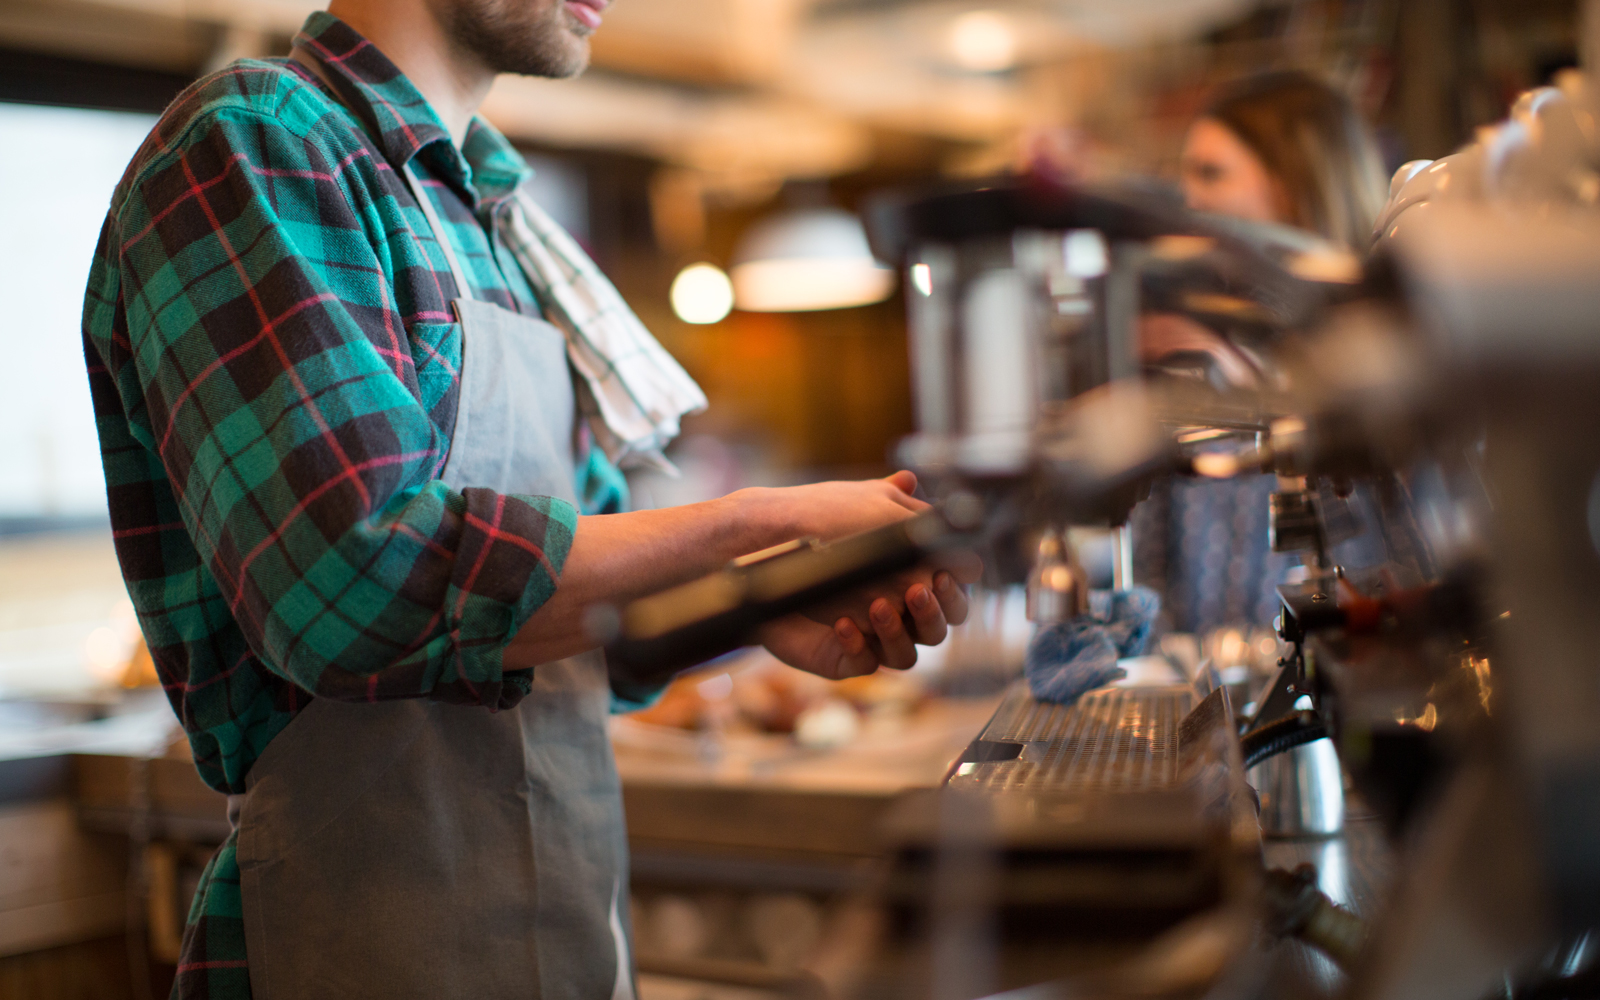 Baristas Reveal How They Feel When You Don't Tip for Coffee